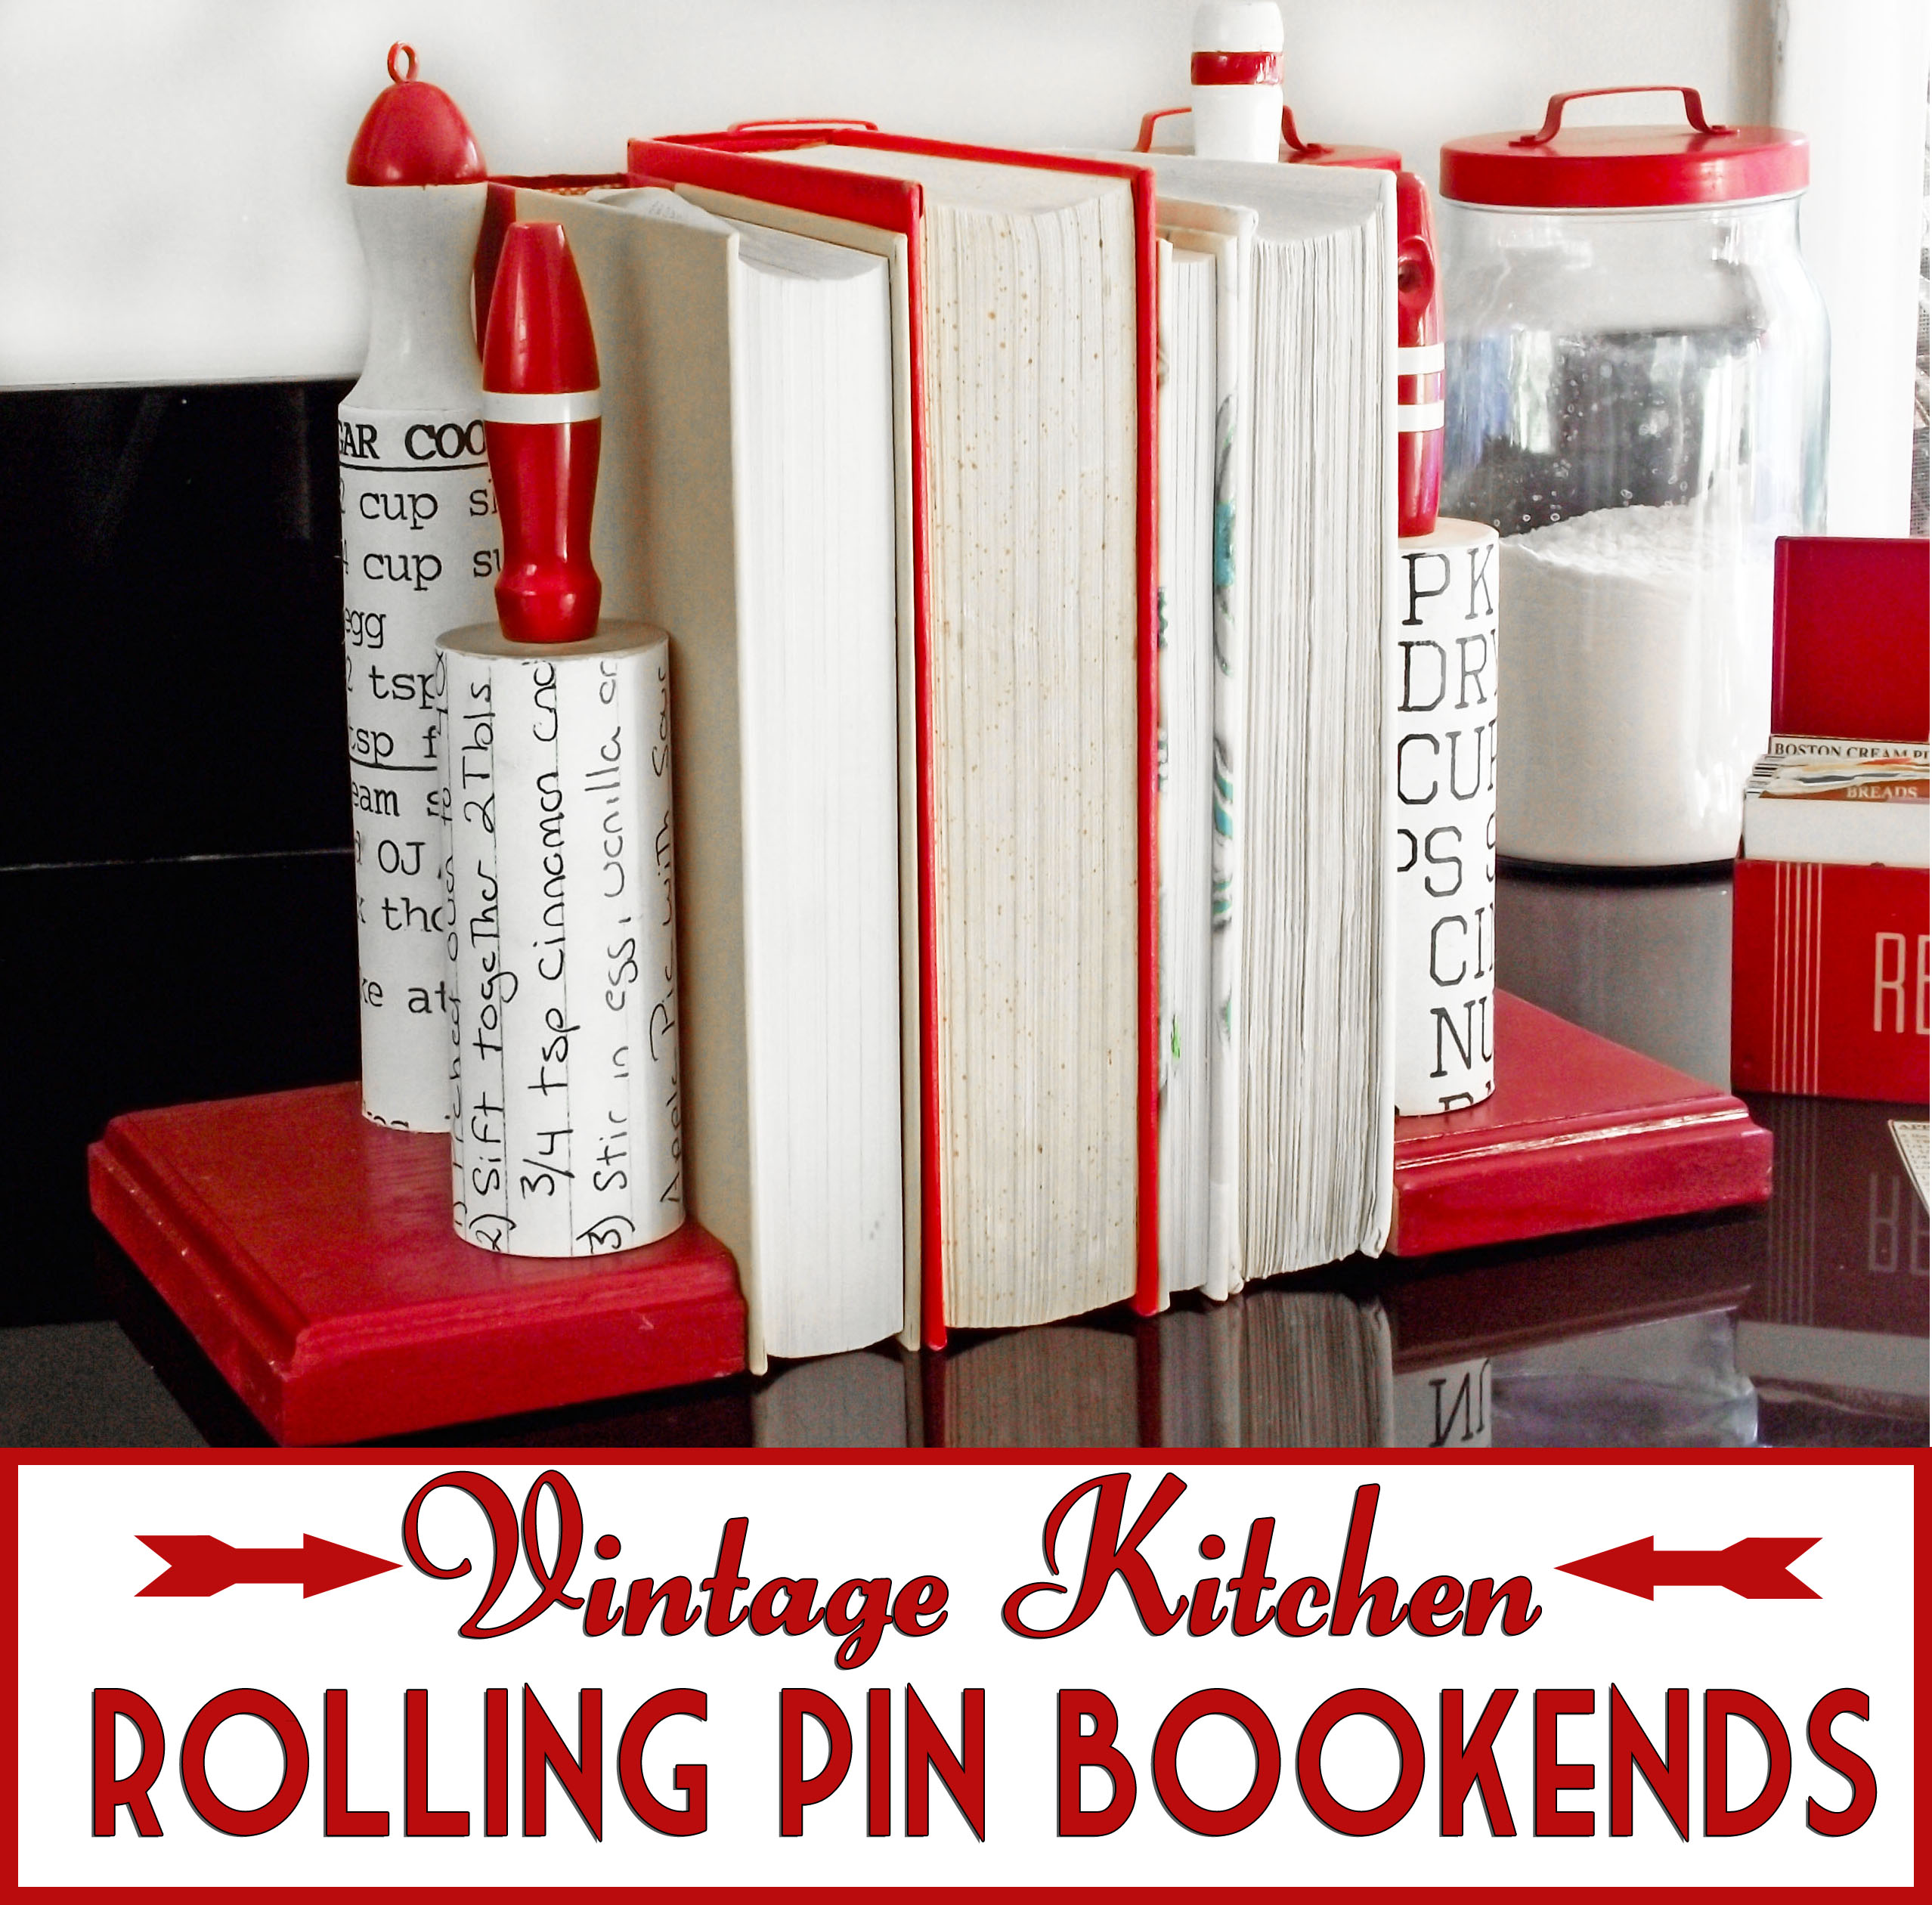 Kitchen Bookends Vintage Rolling Pin Bookends Tutorial Cheltenhamroad